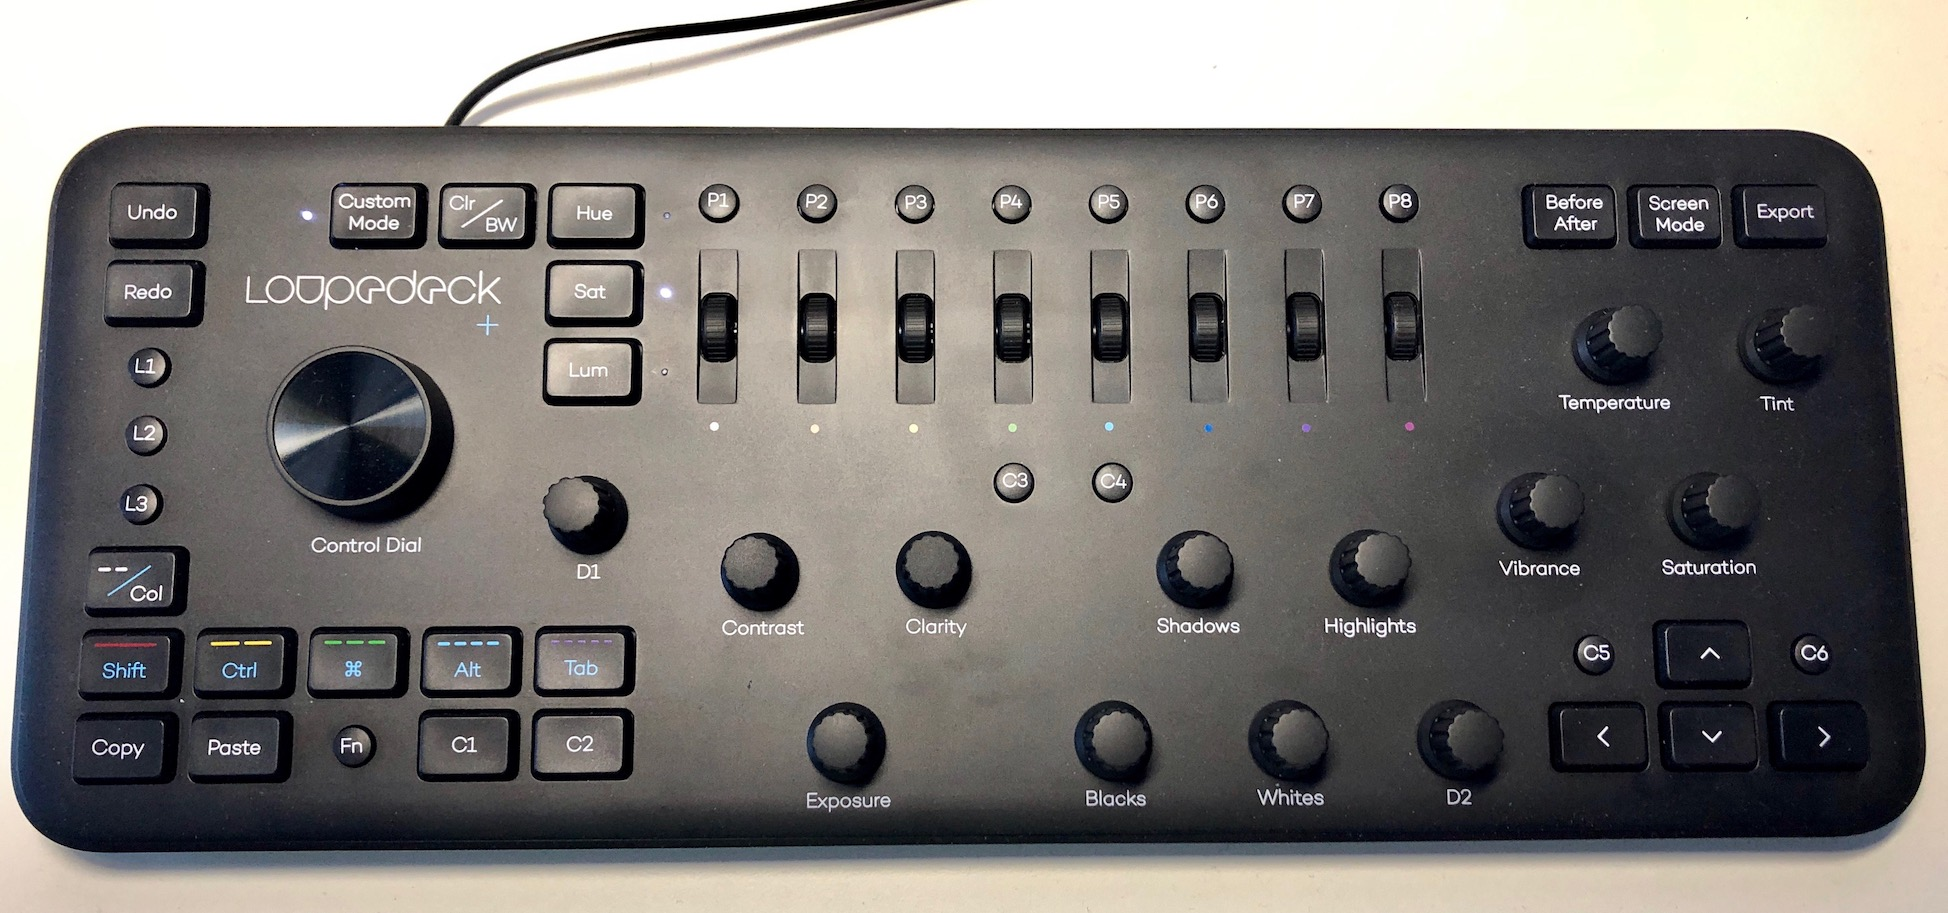 Review: The Loupedeck+ control surface and its Adobe Premiere Pro integration 12